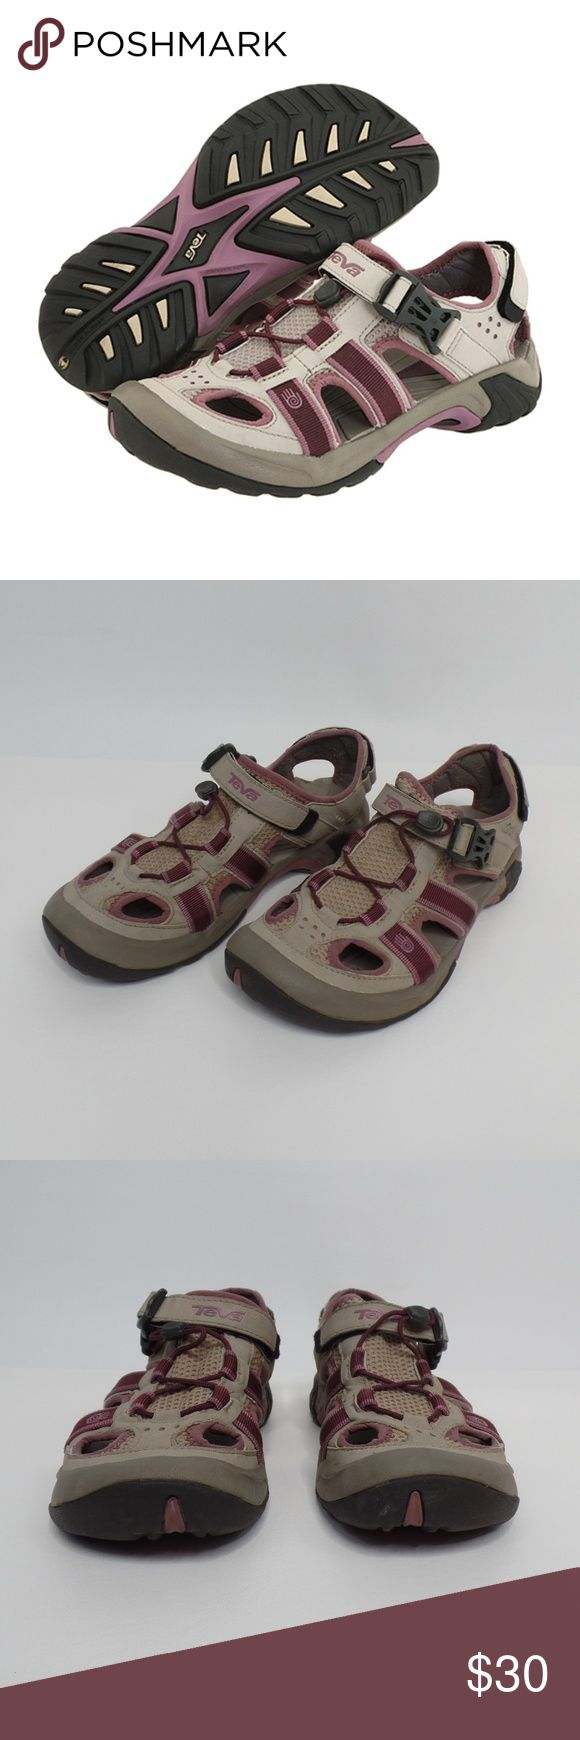 """TEVA {Omnium} Sandals TEVA Sandals {Omnium} #6154 River Water Shoes Outdoor Hiking Women's Size 8  Ready to go for all your adventures!   Features """"Spider Rubber"""" bottom and """"Anatomic Footbed Shoe Pad"""" For your comfort. Closed-toe sandal with grosgrain webbing overlays, multiple drainage ports and quick-dry mesh lining Shock-absorbing ShocPad technology in heel Molded EVA foam midsole Bungee lacing with quick-release buckled strap at vamp and hook-and-loop back strap  Excellent condition…"""